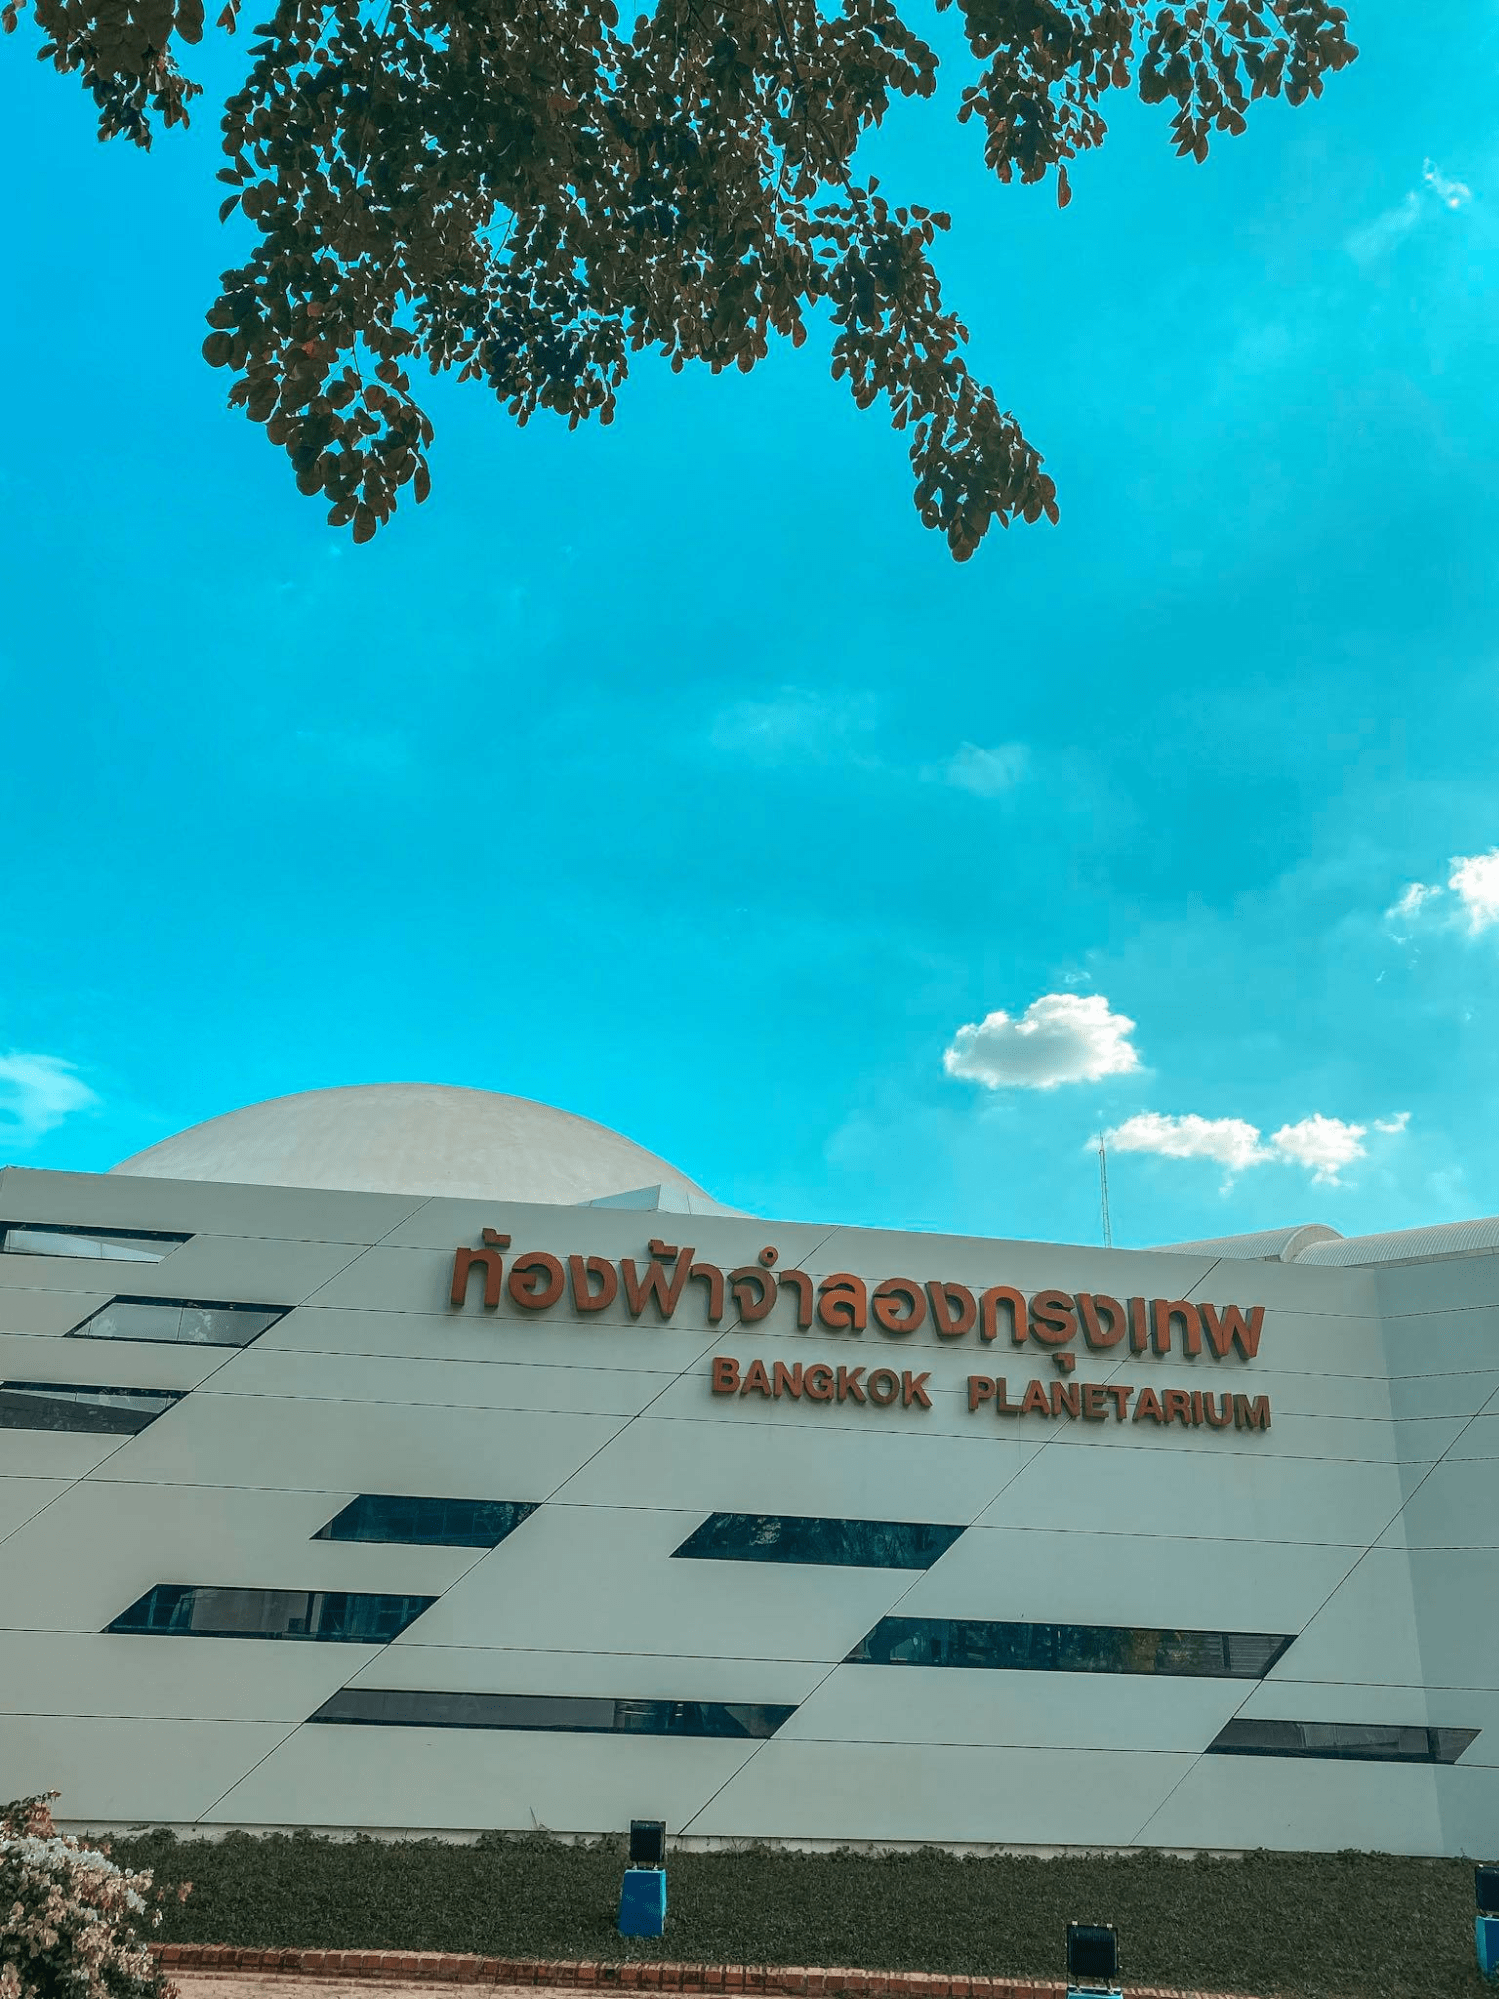 Bangkok Planetarium is an outer space exhibition in Bangkok